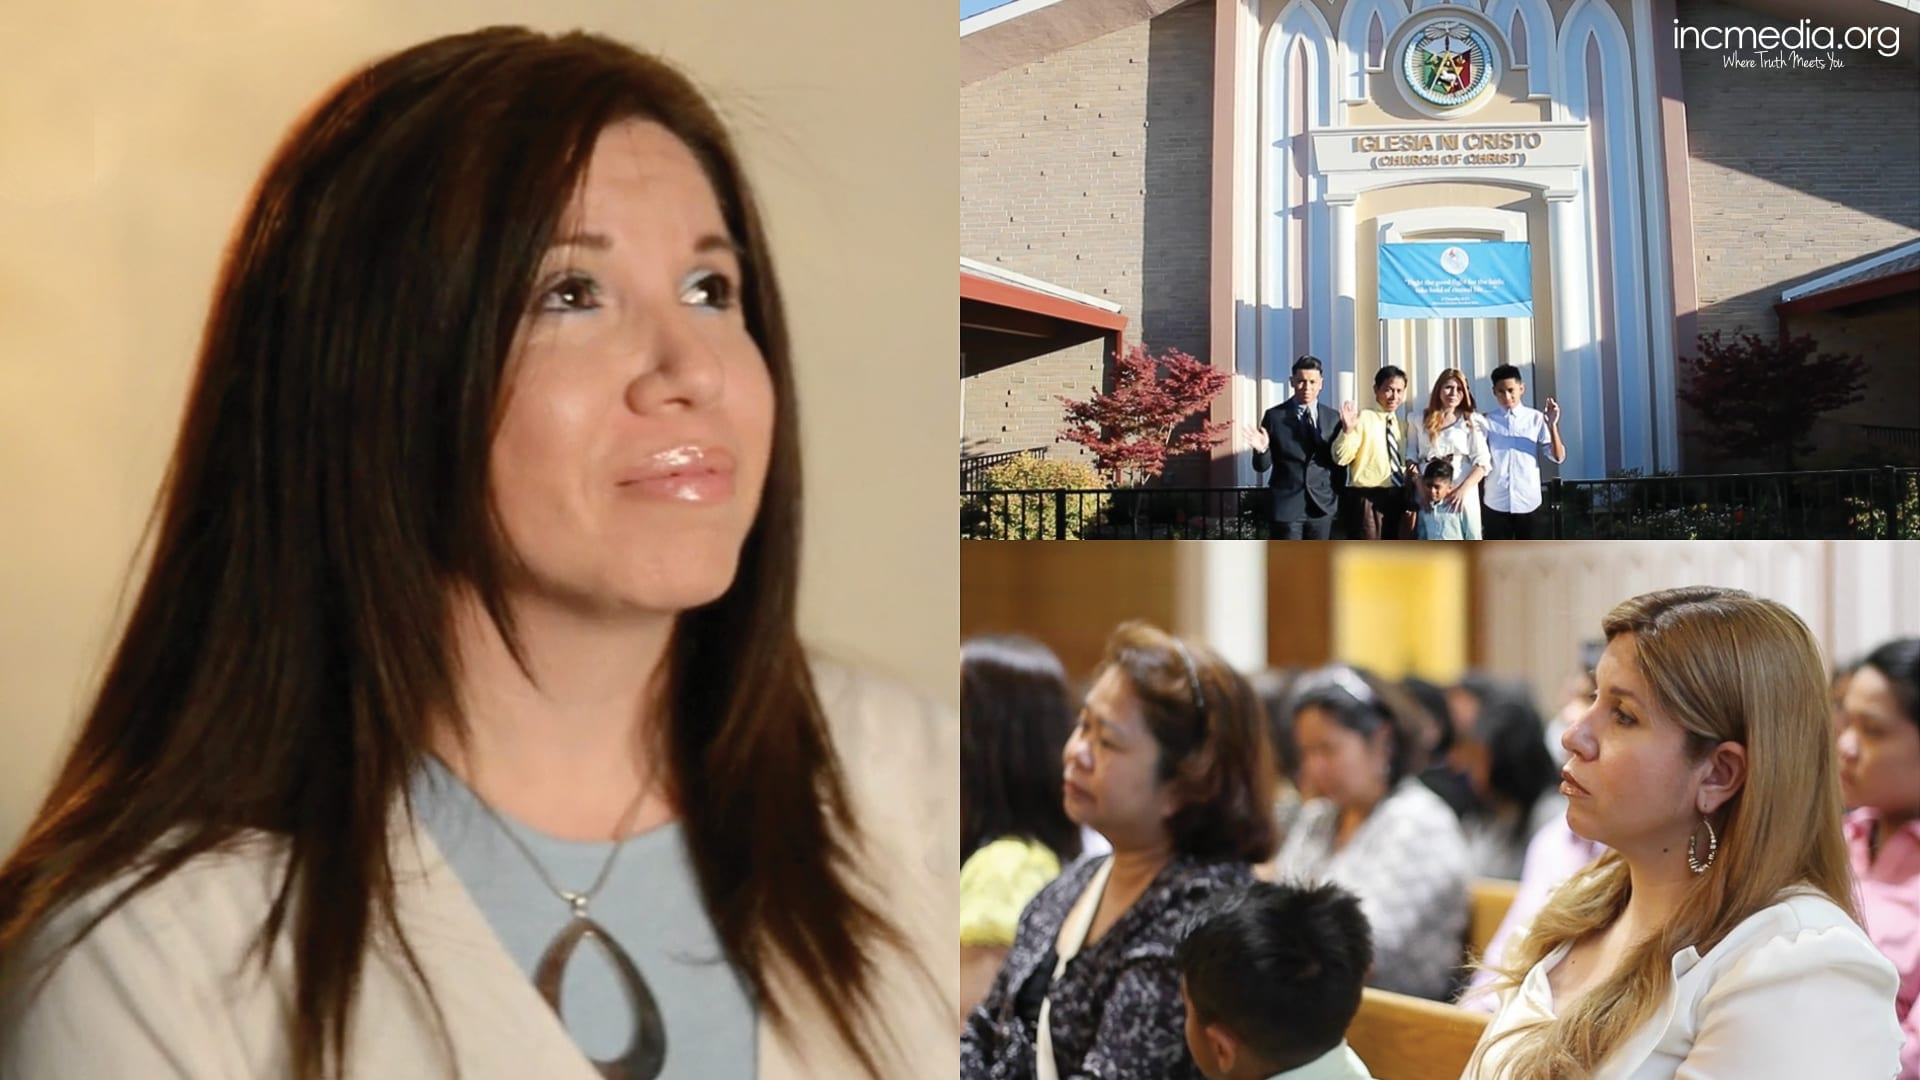 collage, first picture is woman looking up, second is group photo in front of worship building, third is woman listening during worship service